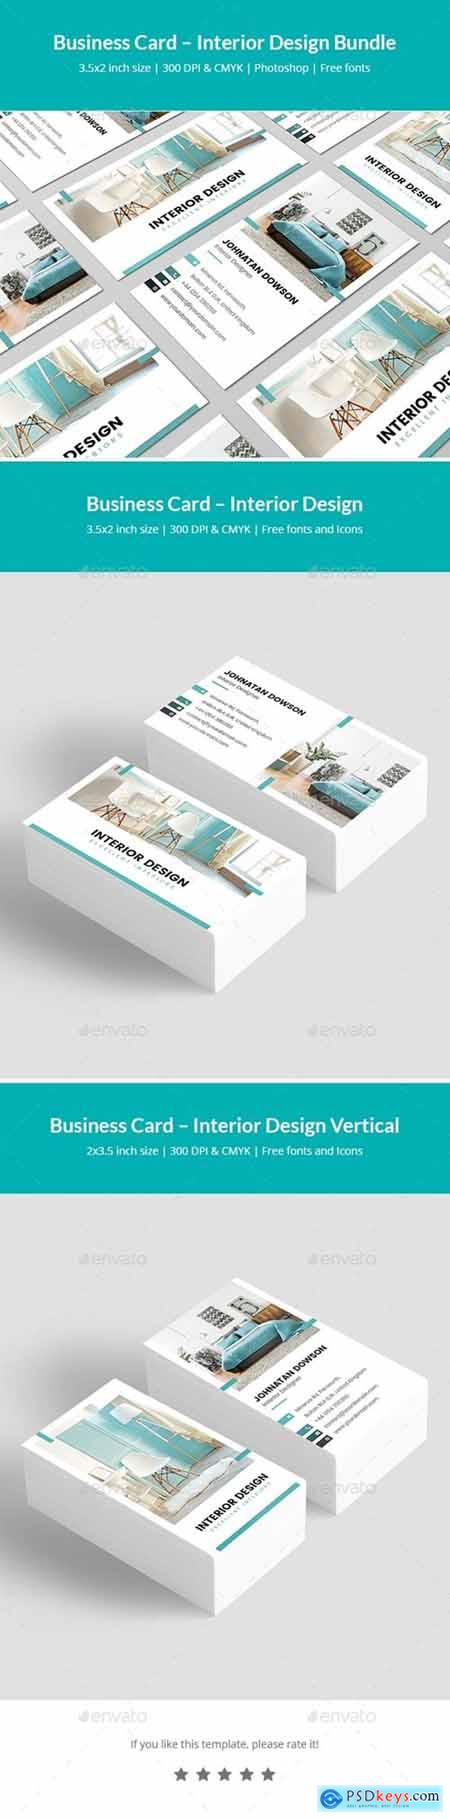 Business Card – Interior Design Bundle Print Templates 2 in 1 25512493